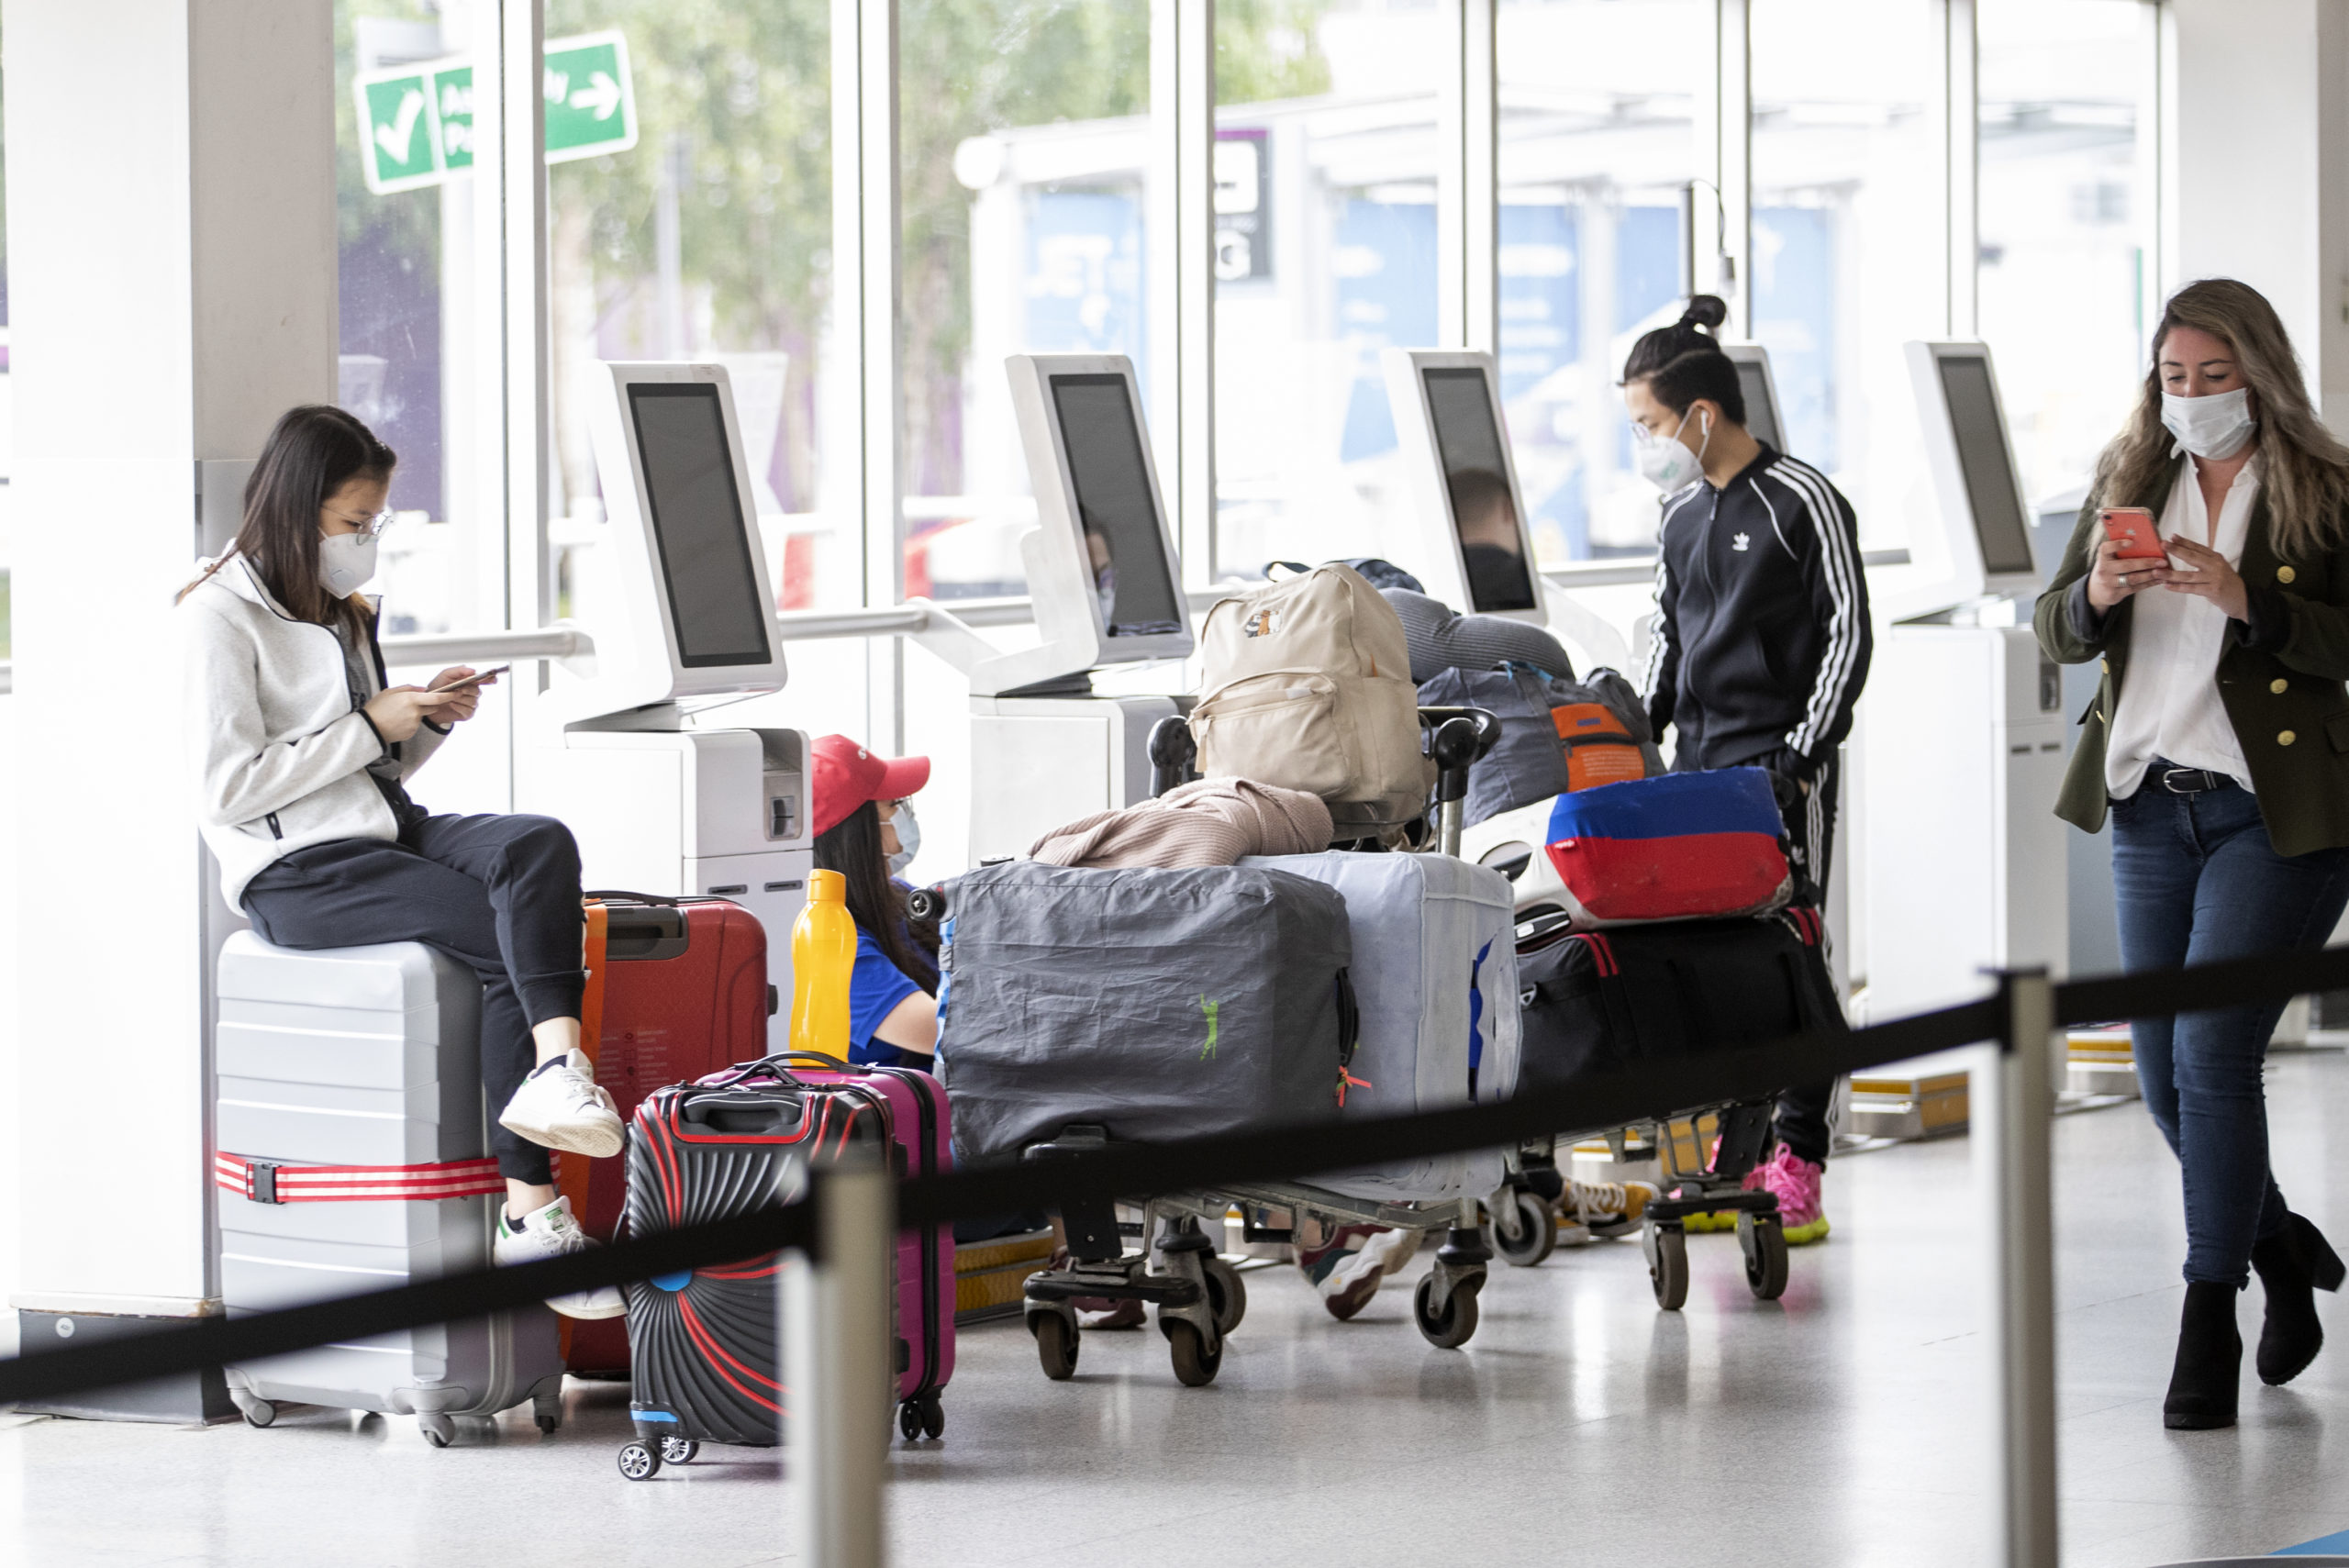 Passengers wearing protective face masks wait at the check-in area of Edinburgh Airport